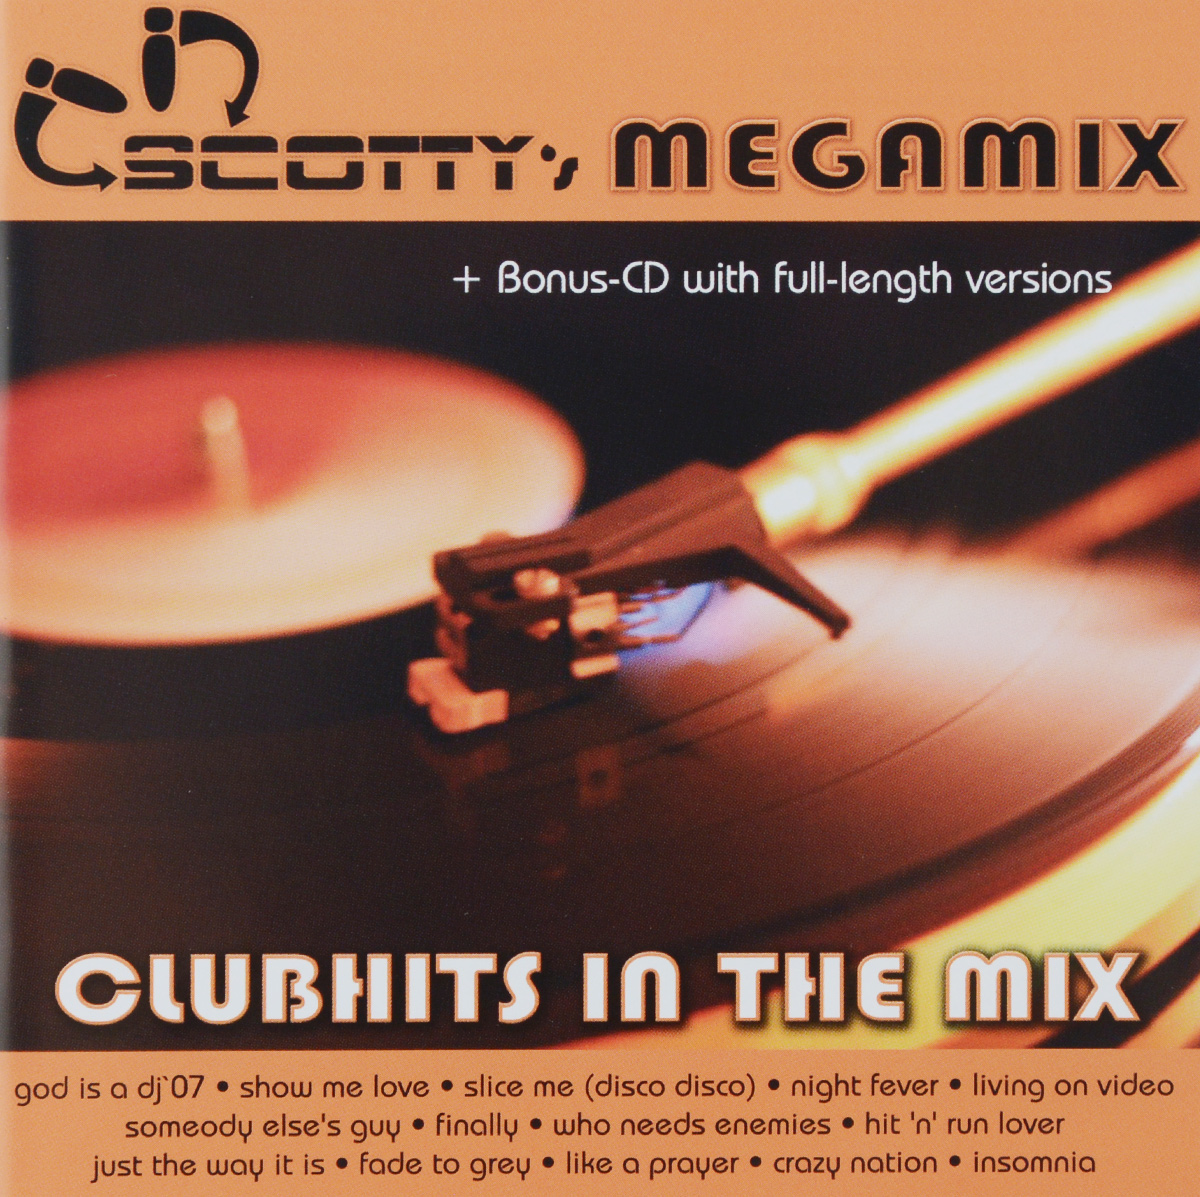 Clubhits In The Mix (2 CD) sustaining the nation